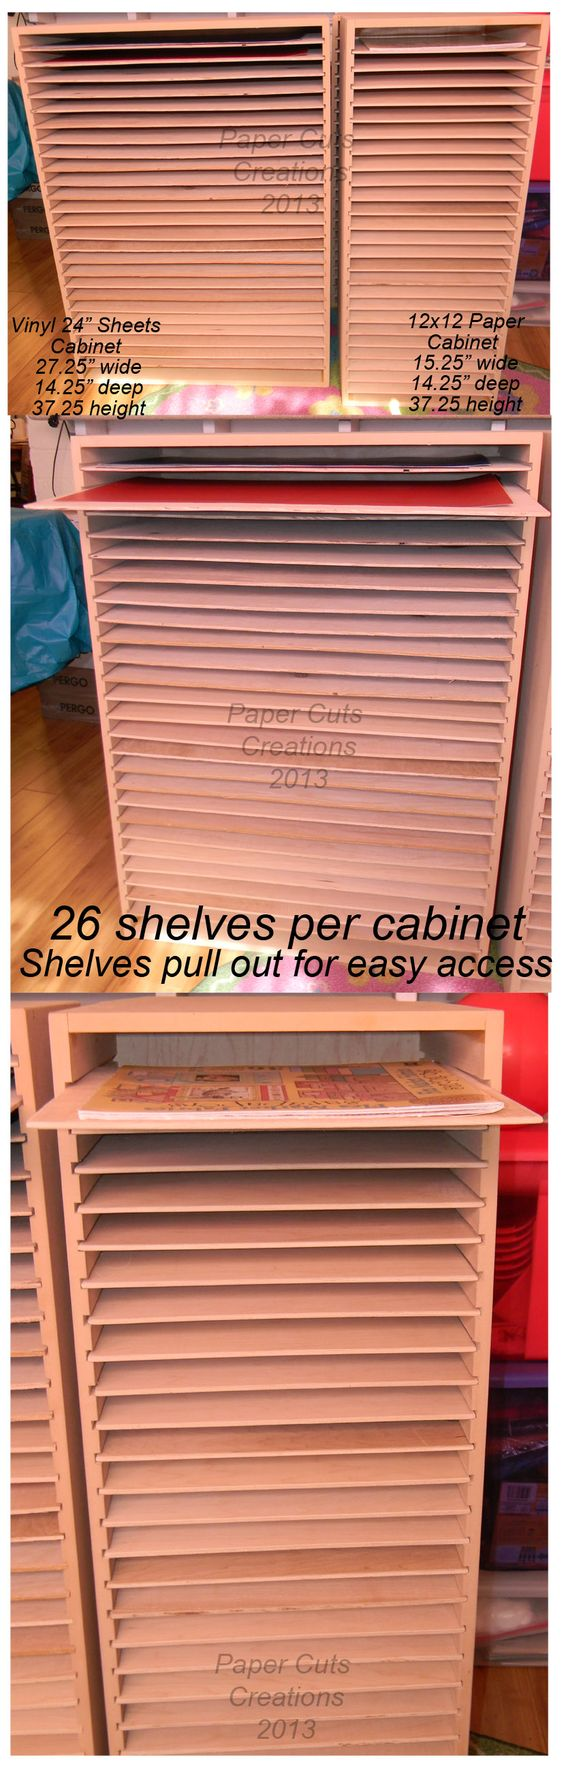 Unfinished craft room cabinets stores 12x12 paper and 24 for Vinyl paper for kitchen cabinets